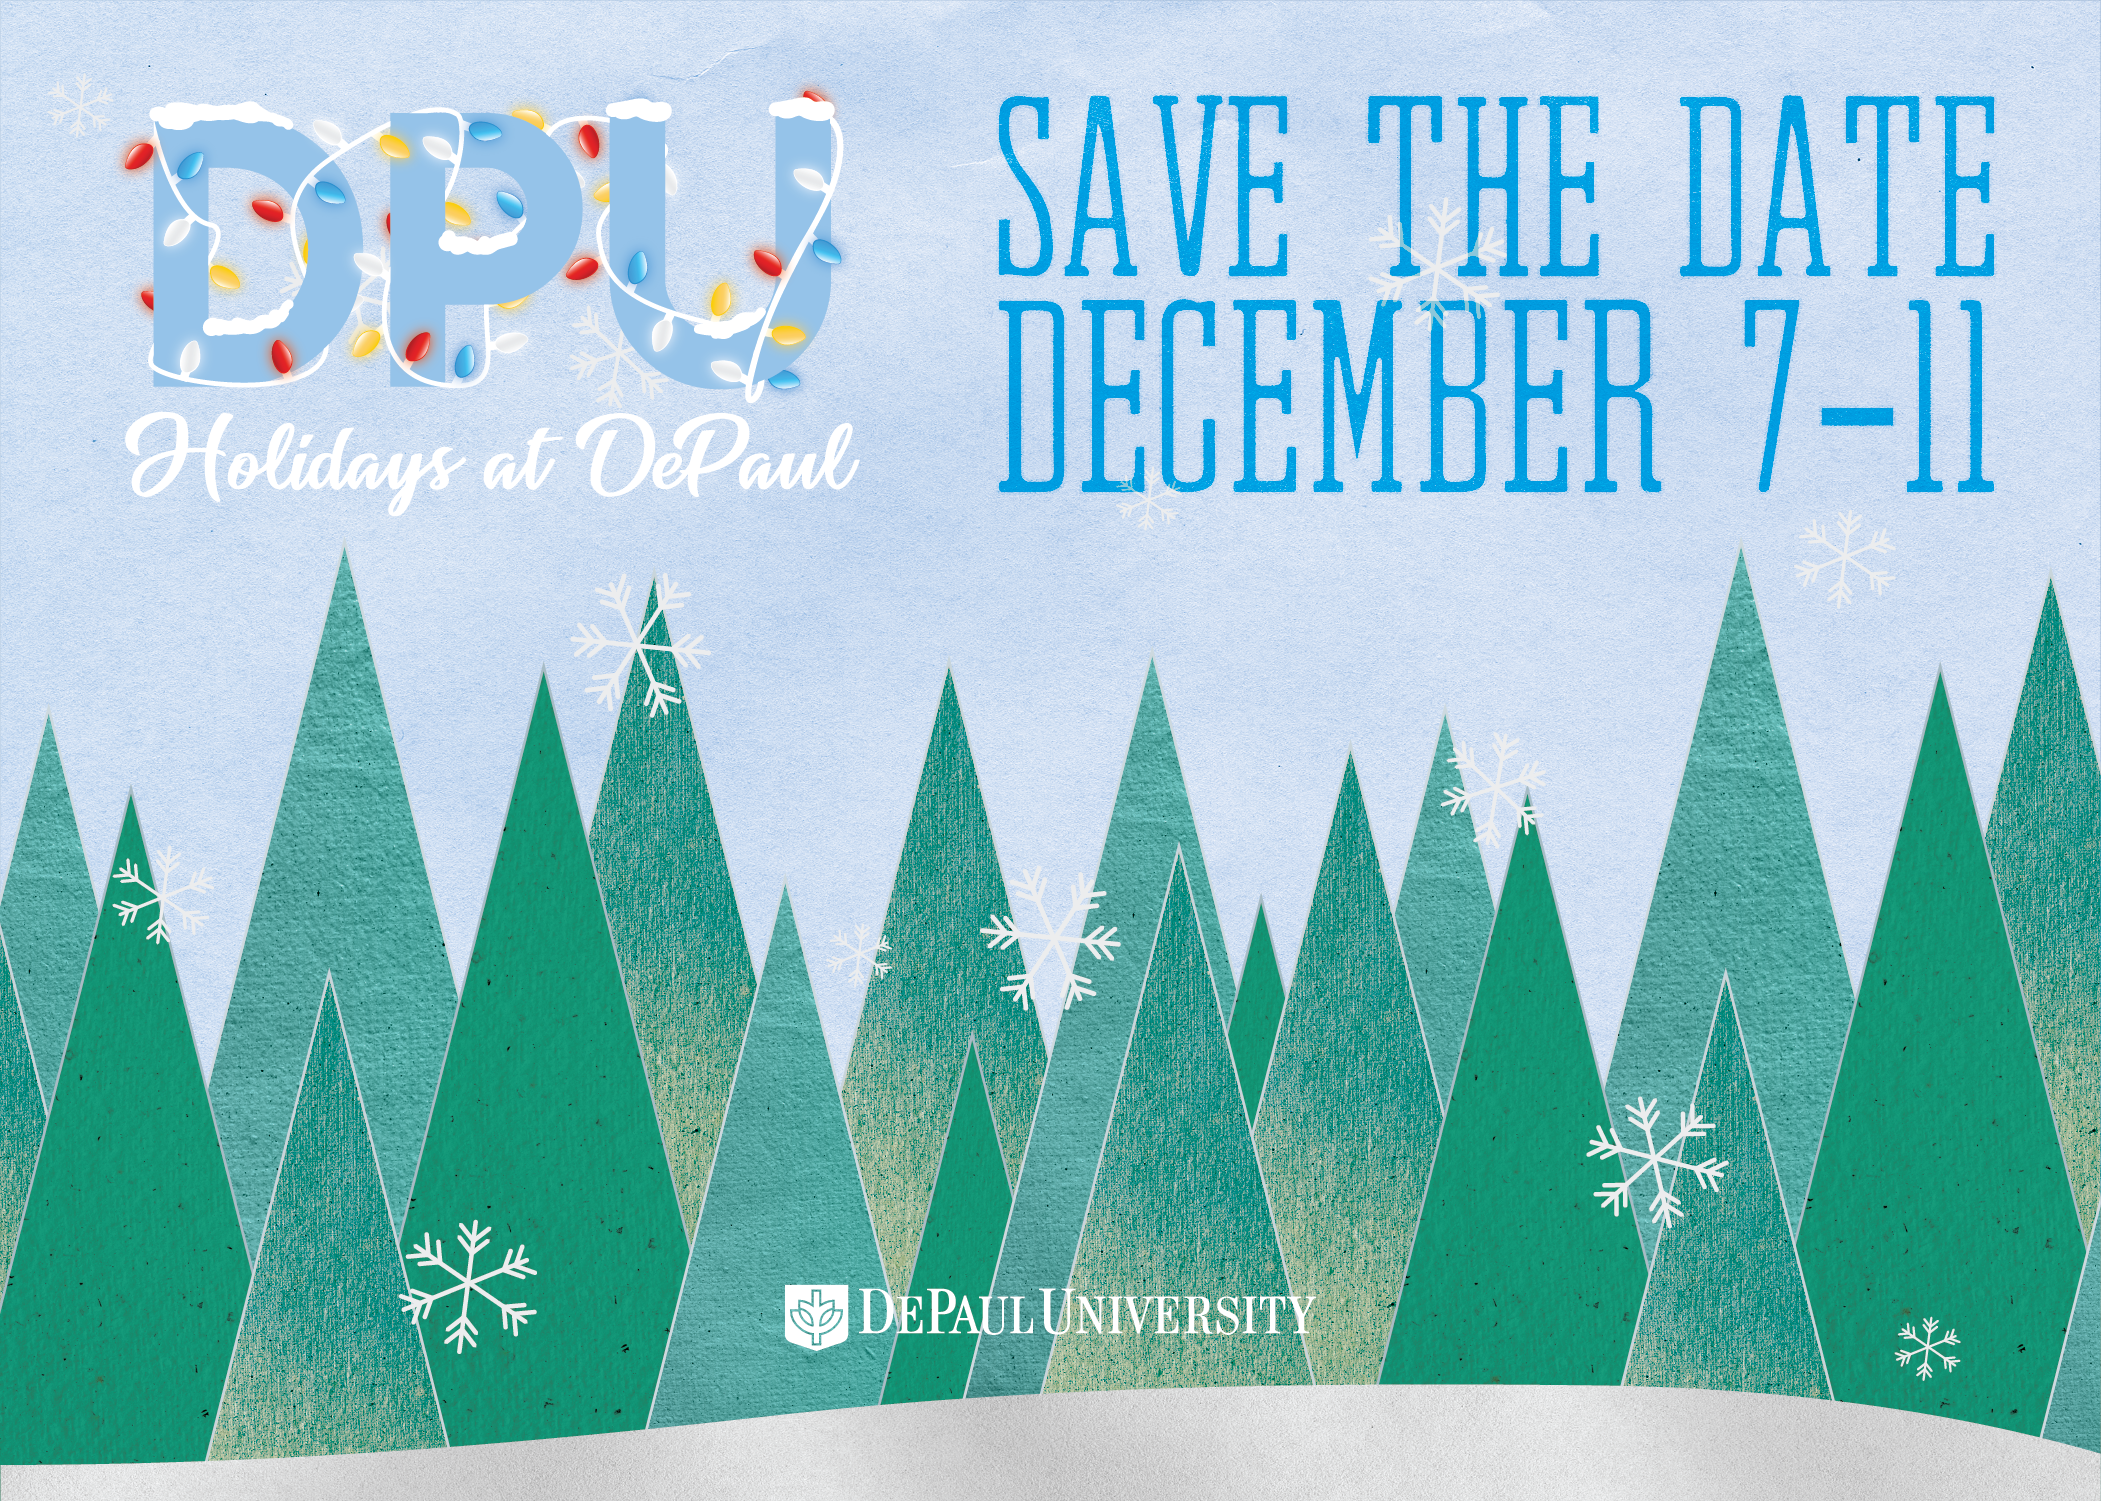 Holidays at DePaul